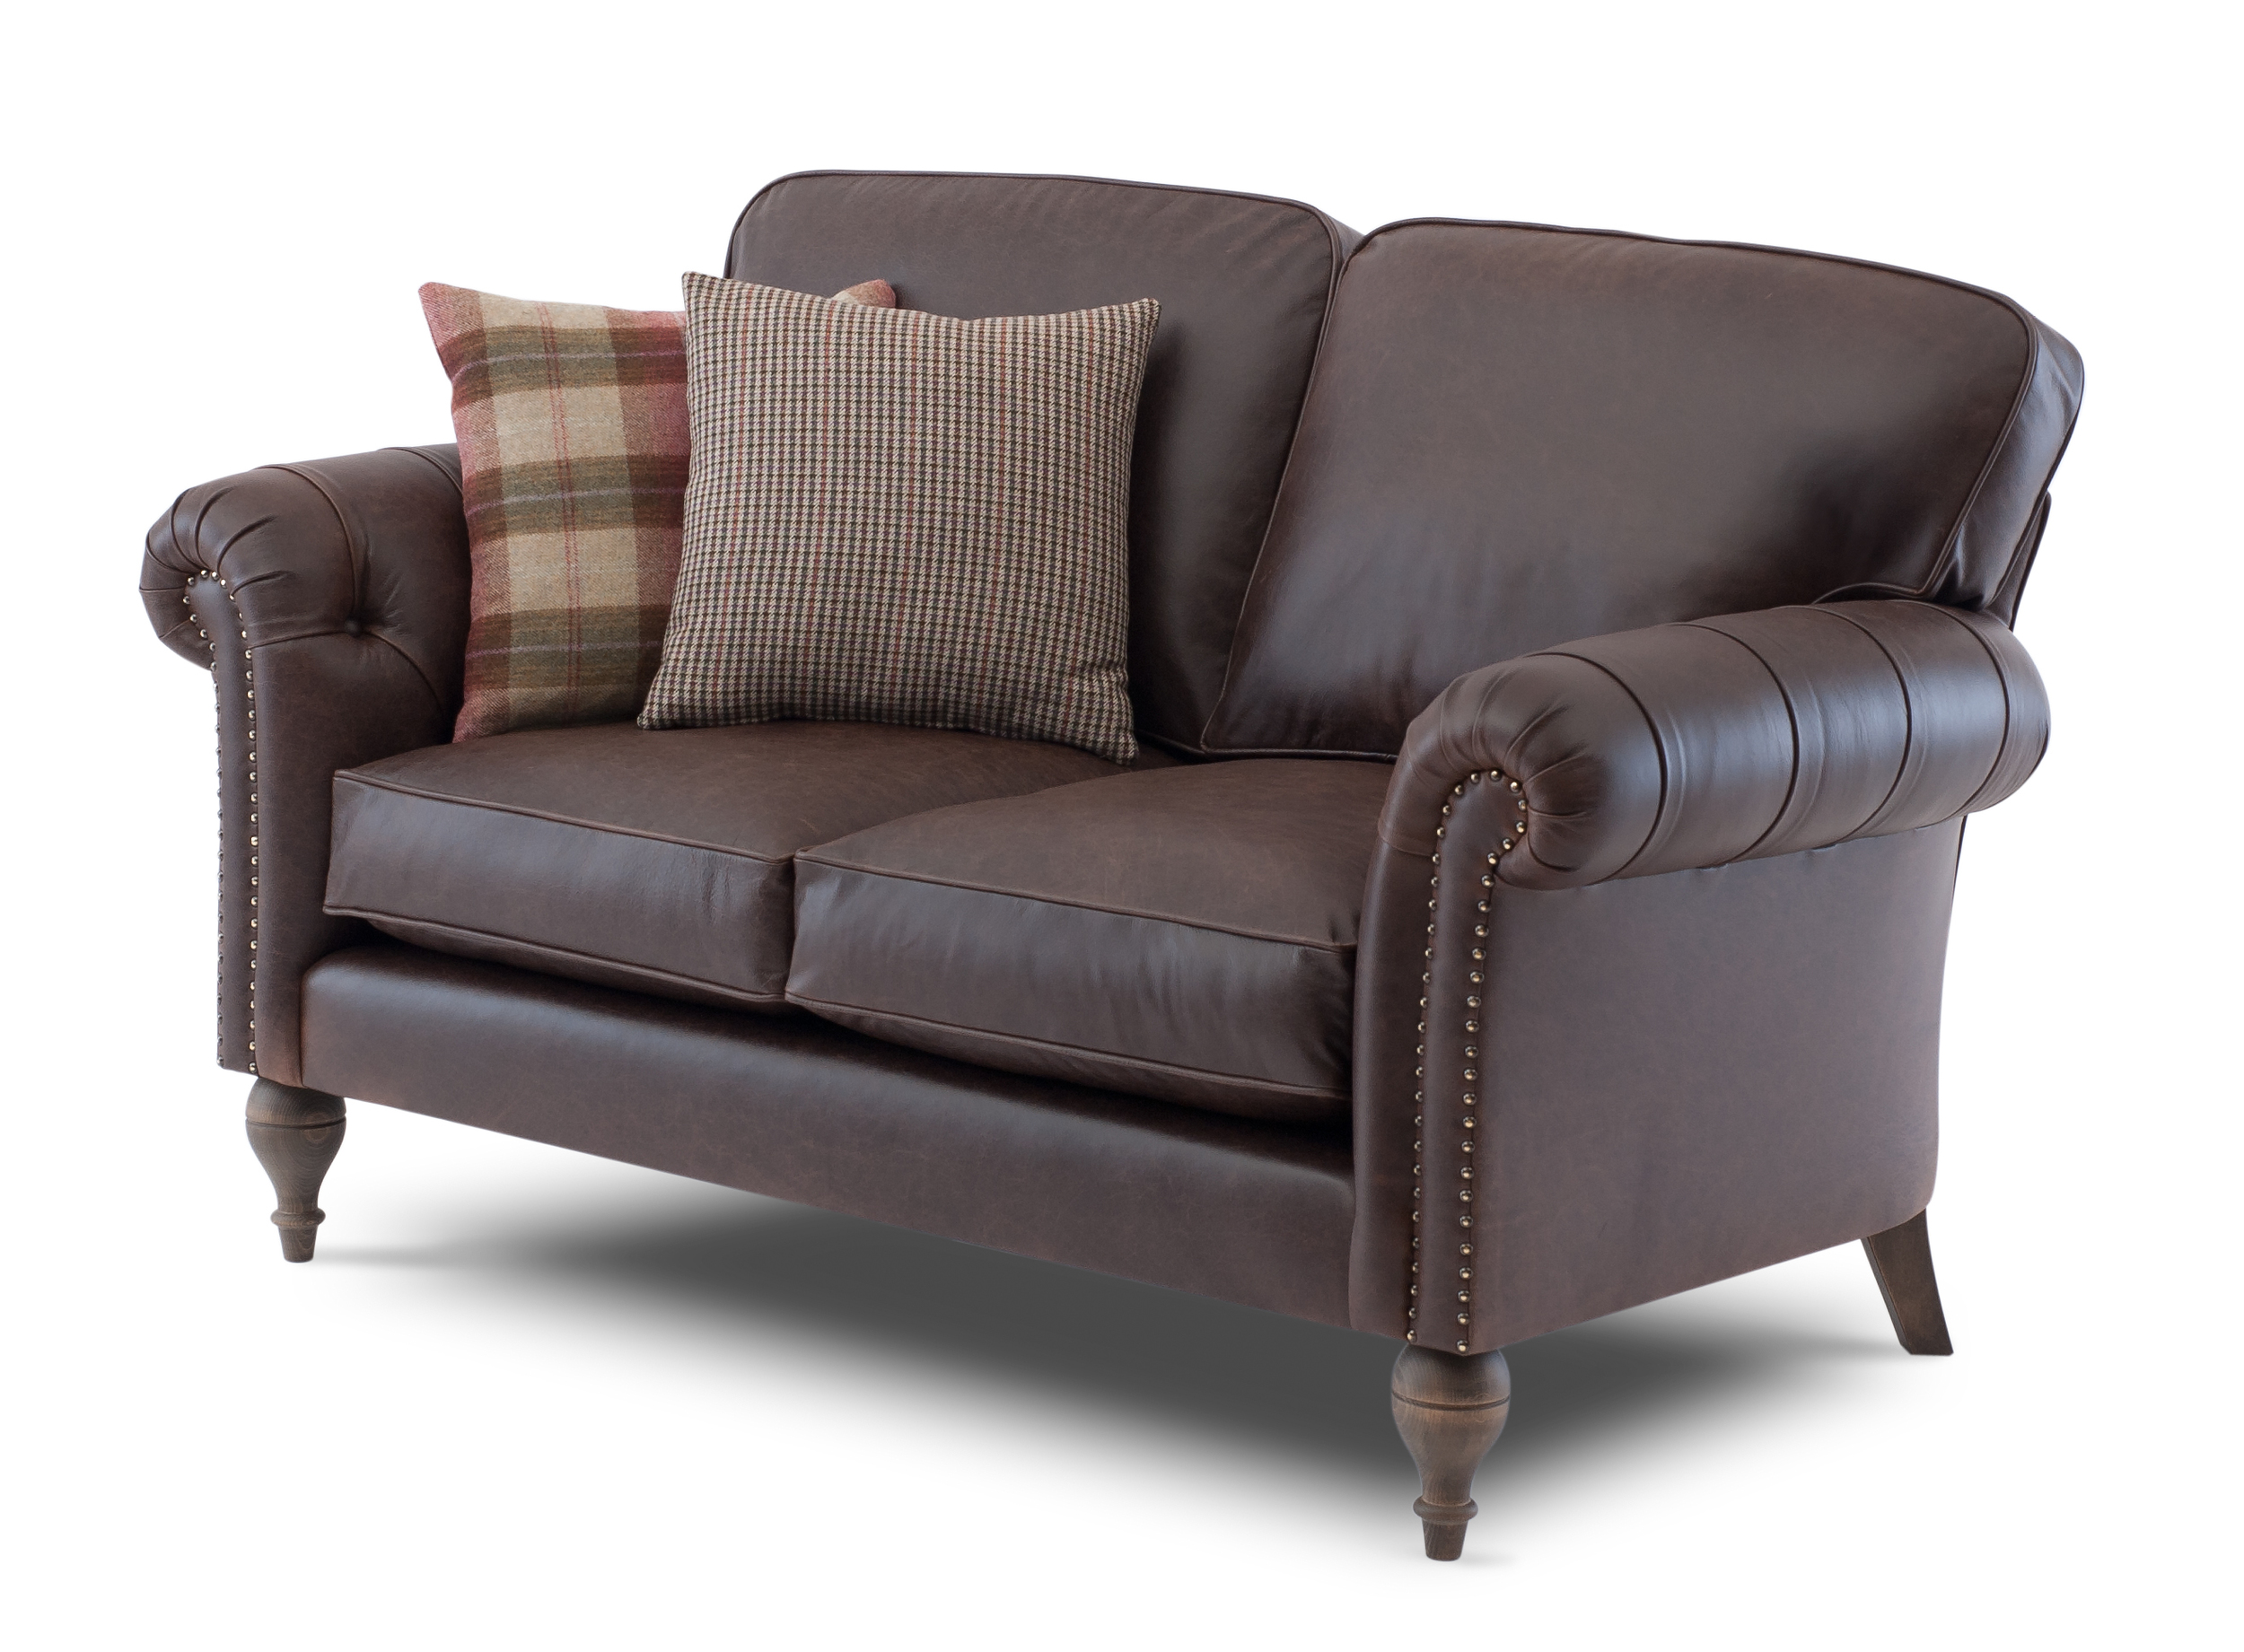 Delamere 2st Sofa Leather-187.jpg